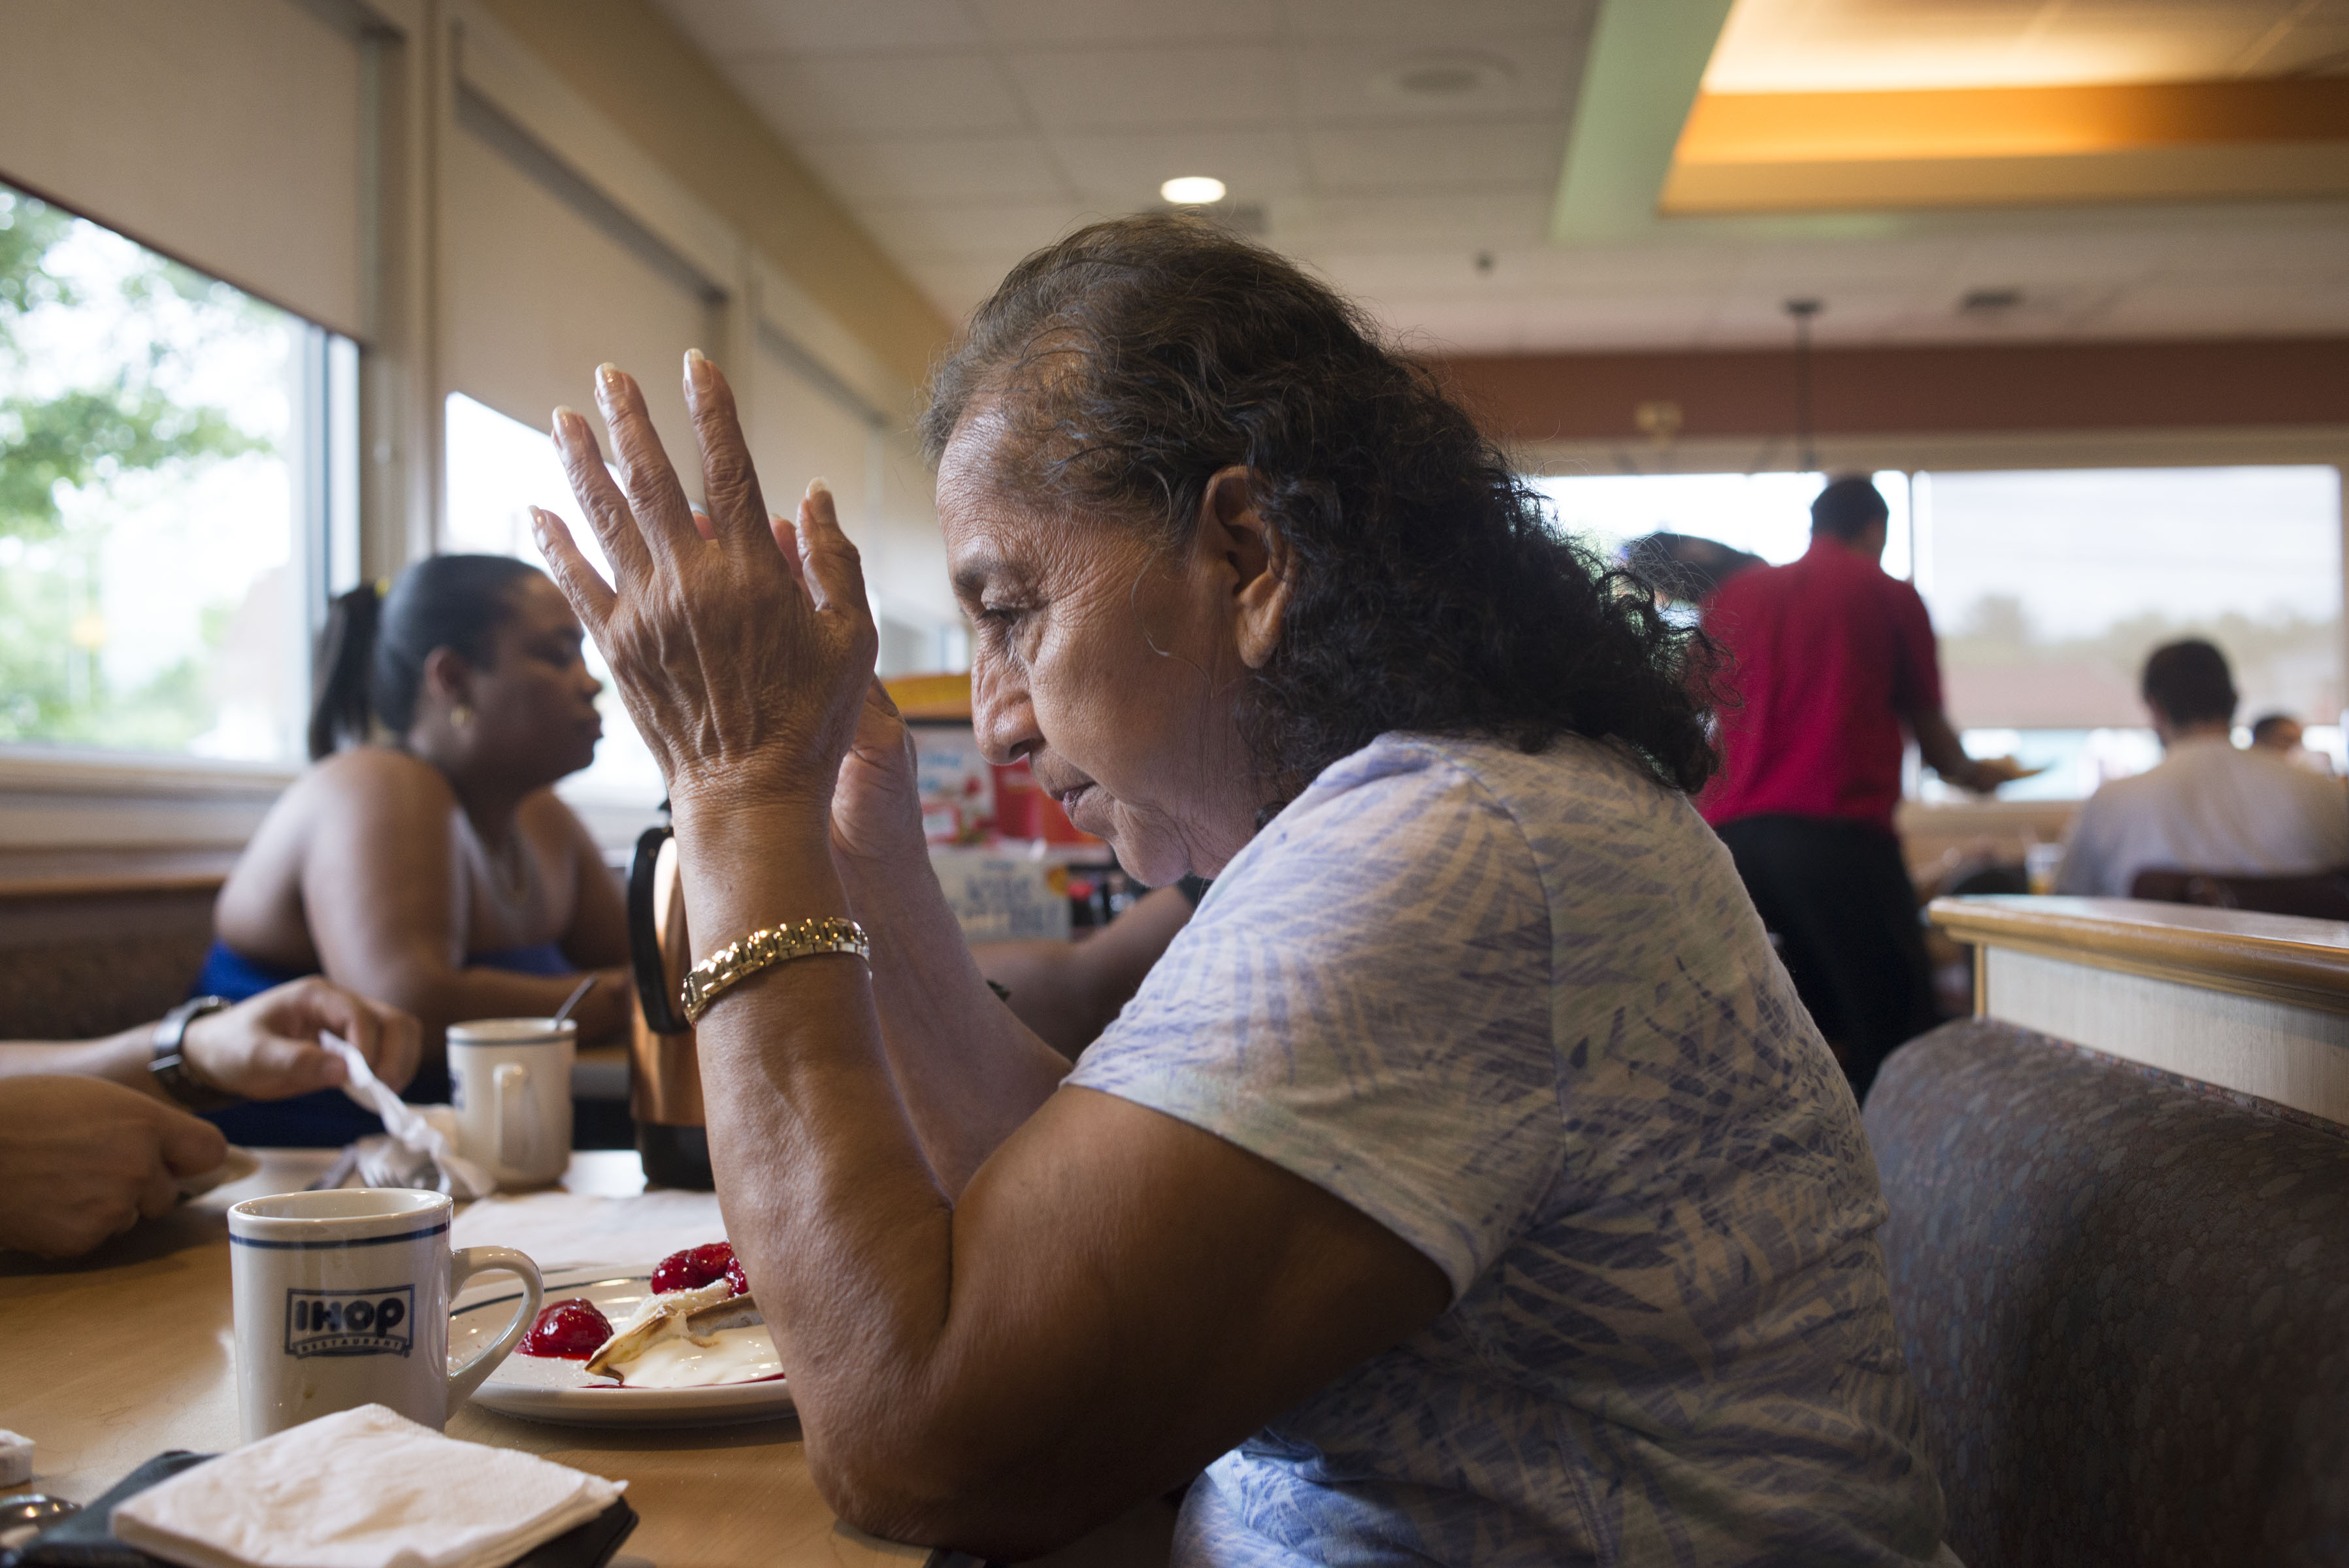 "My grandmother, Rosario Hernandez, prays before breakfast at IHop. ""Gracias, papa Dios por nuestros alimentos provelele al que no tiene,"" she said. In English: ""Thank you, God for our Food. Please provide for those who do not have."" (Photo by Iaritza Menjivar/GroundTruth)"